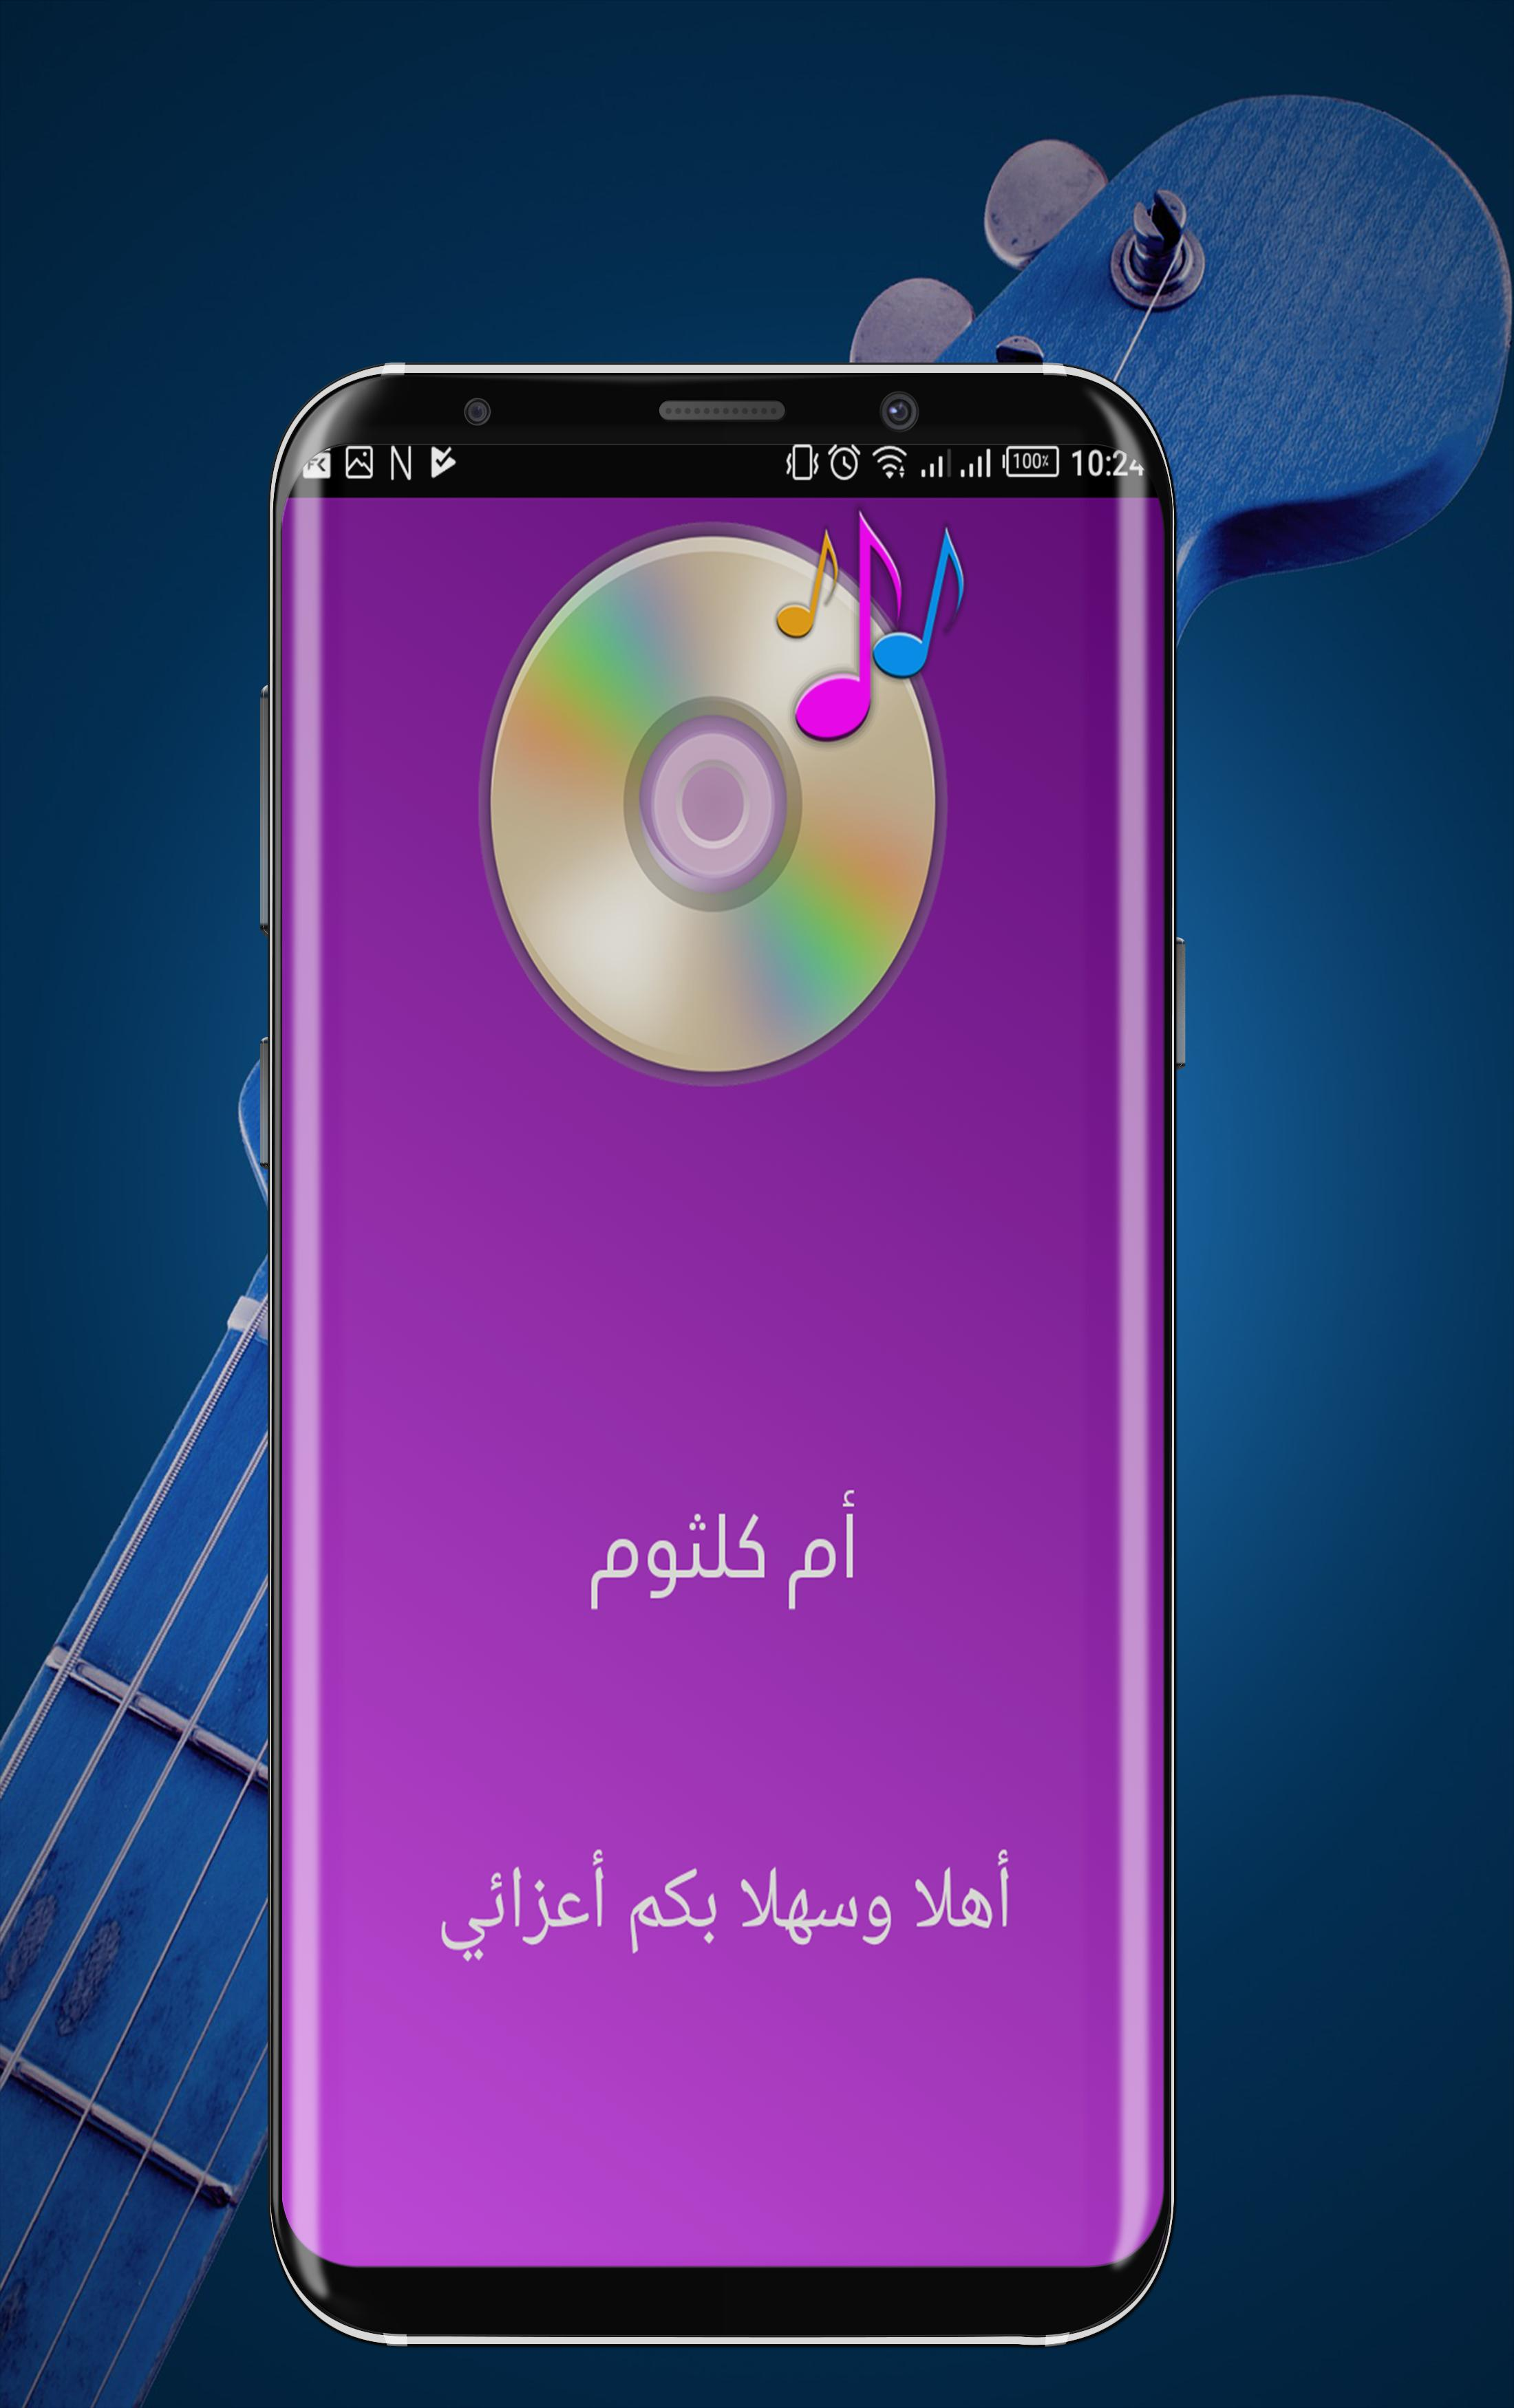 6db37fe20 أغاني أم كلثوم بعيد عنك for Android - APK Download